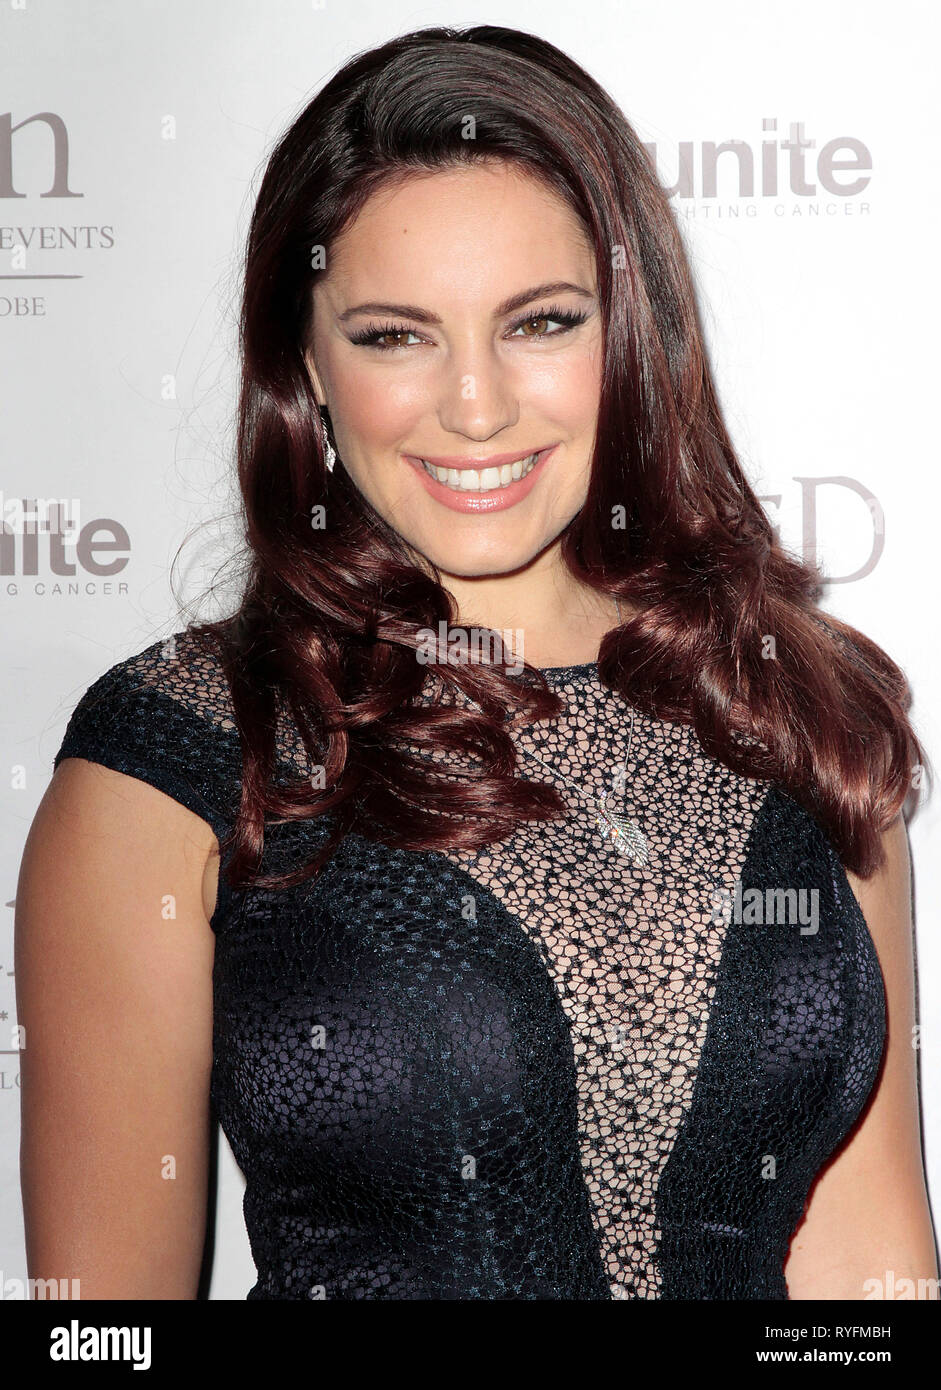 Nov 22, 2014 - London, England, UK - Teens Unite: A Twisted Tale Charity Ball at The UnderGlobe, Southbank Photo Shows: Kelly Brook - Stock Image